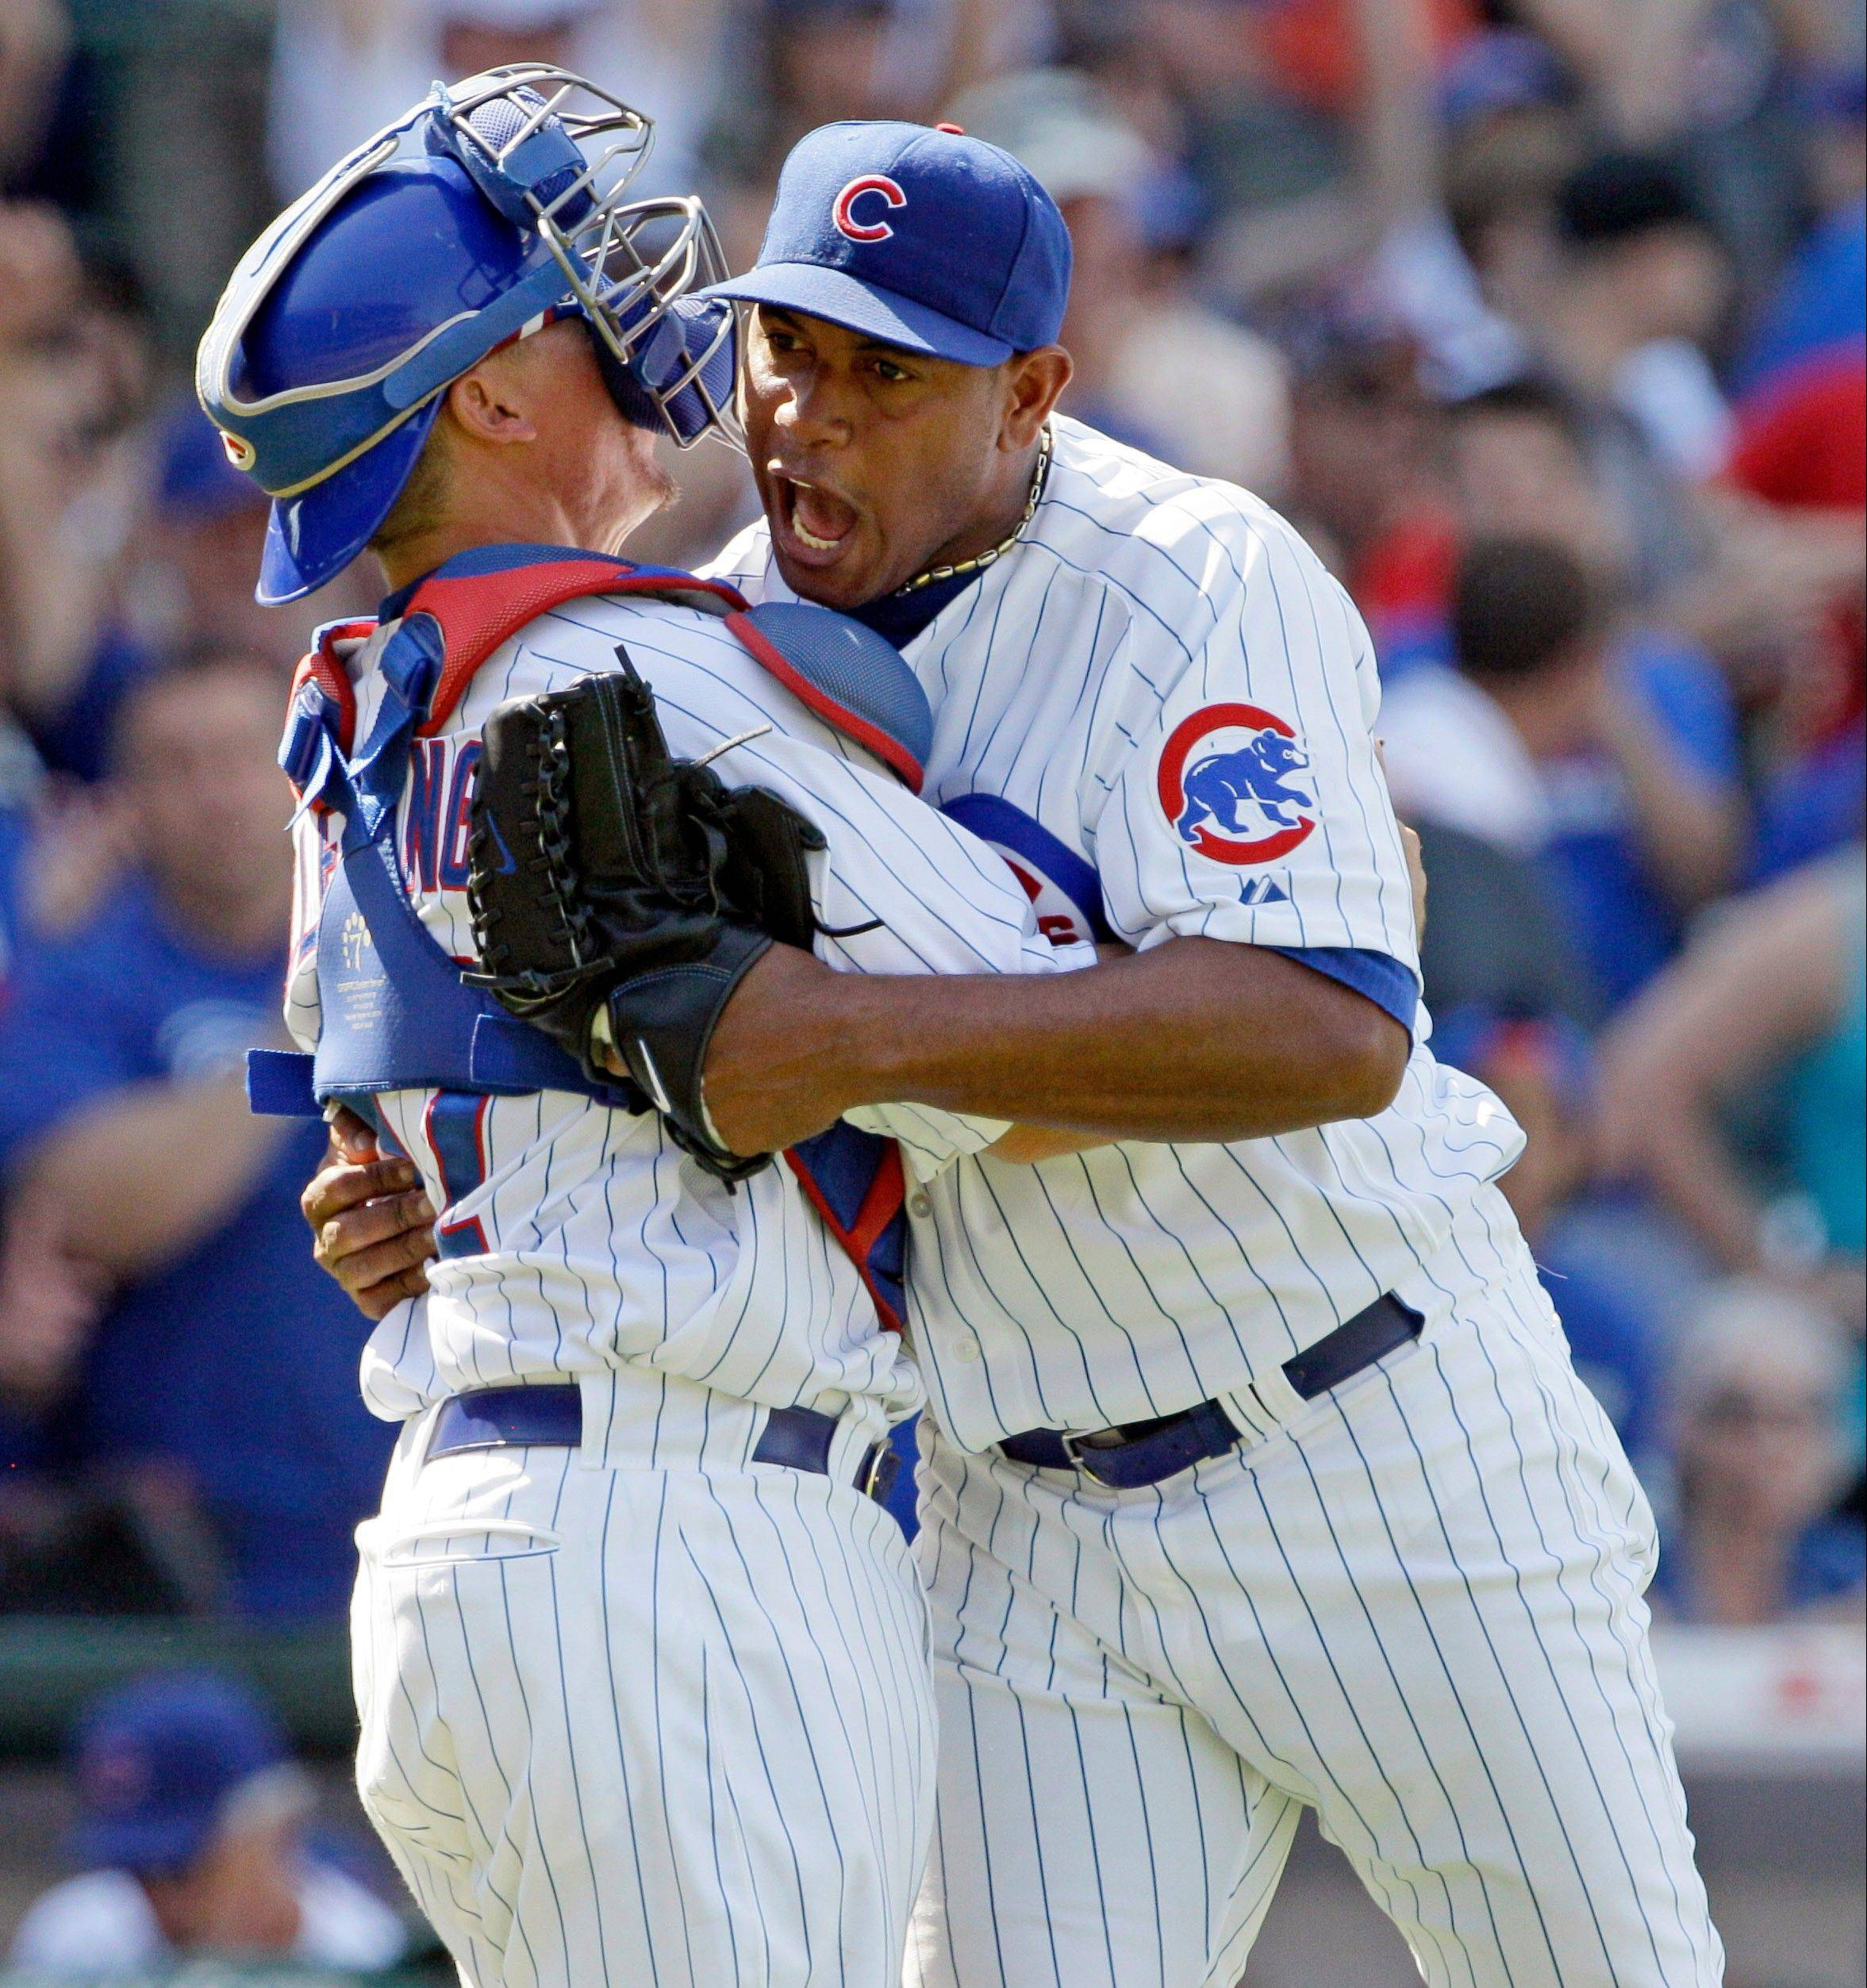 Carlos Marmol celebrates with catcher Steve Clevenger after saving the Cubs' 3-0 victory over the Red Sox at Wrigley Field. Marmol, who lost his job as closer before going on the disabled list, earned his third save of the season and first since May 2.